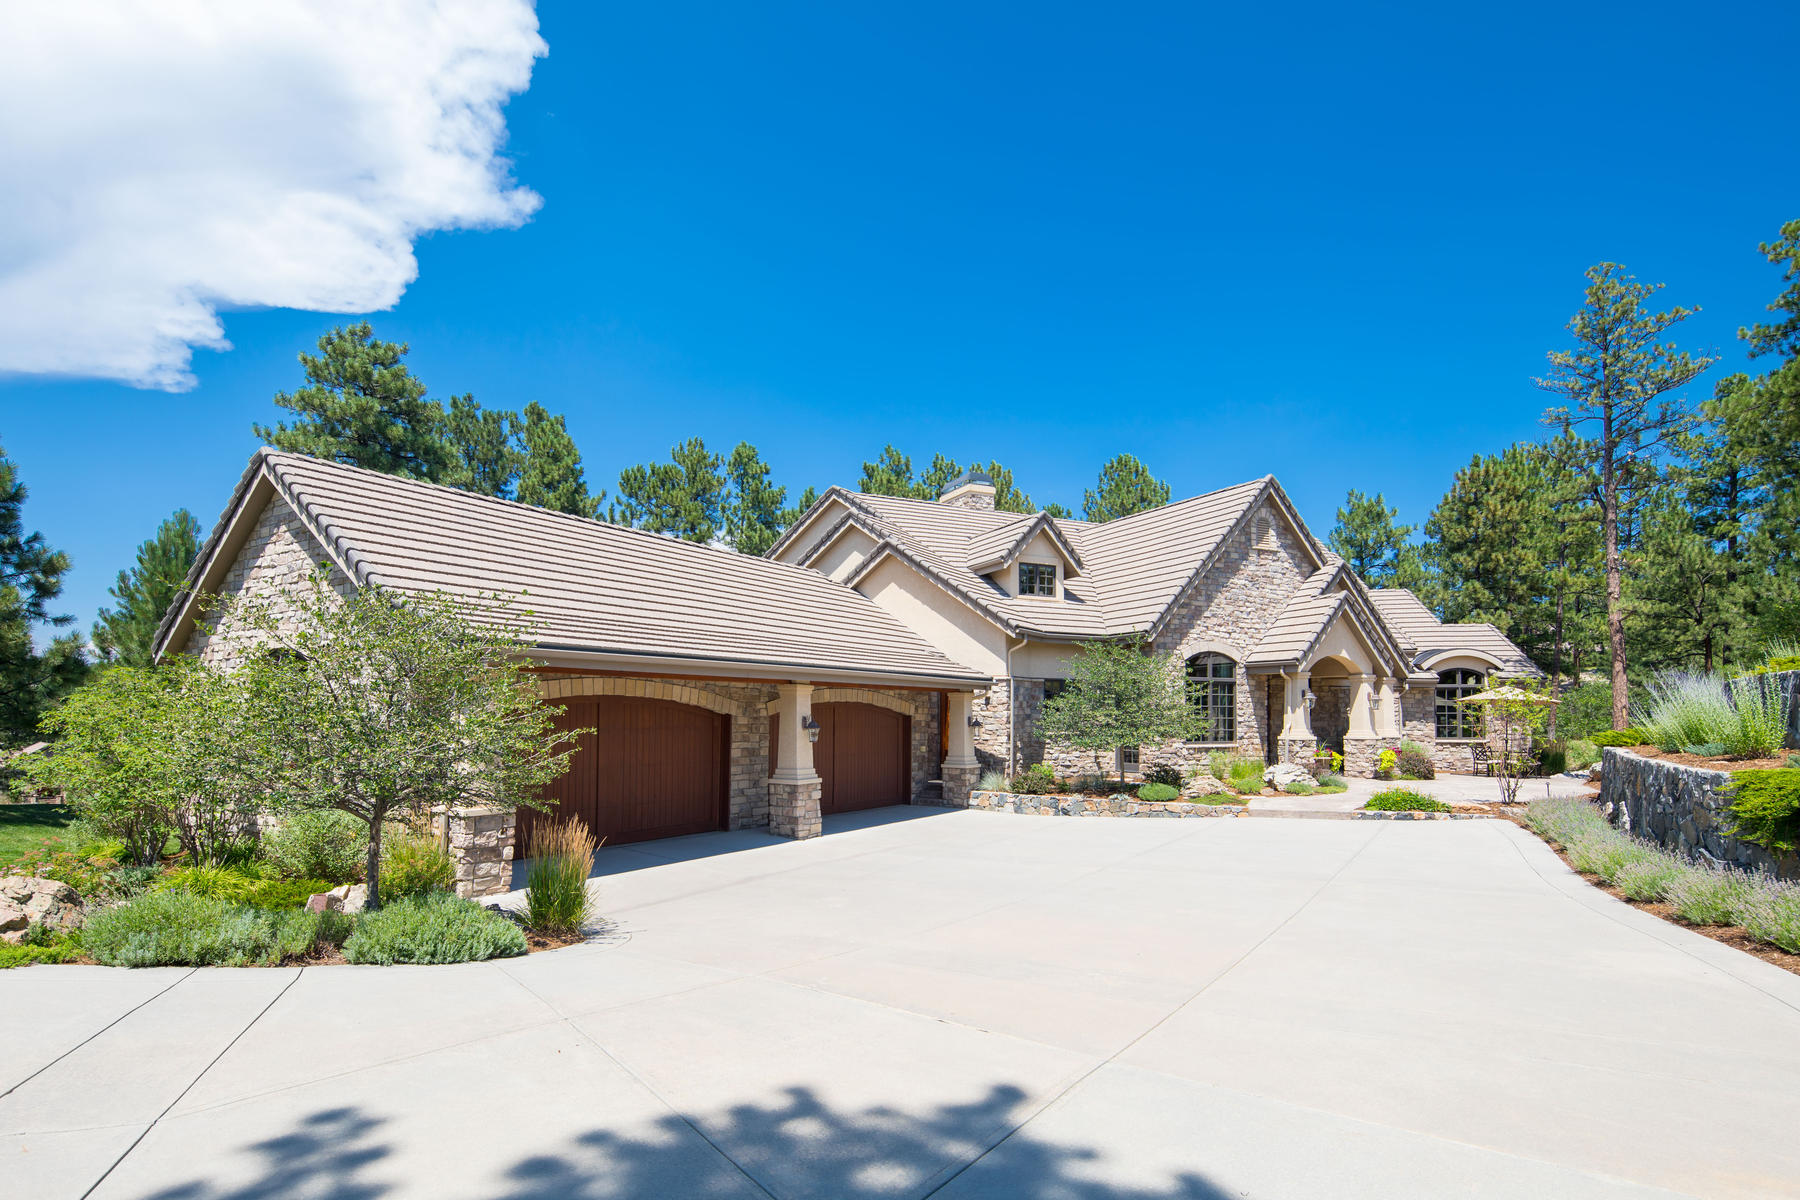 Single Family Home for Active at 663 Yankakee Dr 663 Yankakee Dr Castle Rock, Colorado 80108 United States